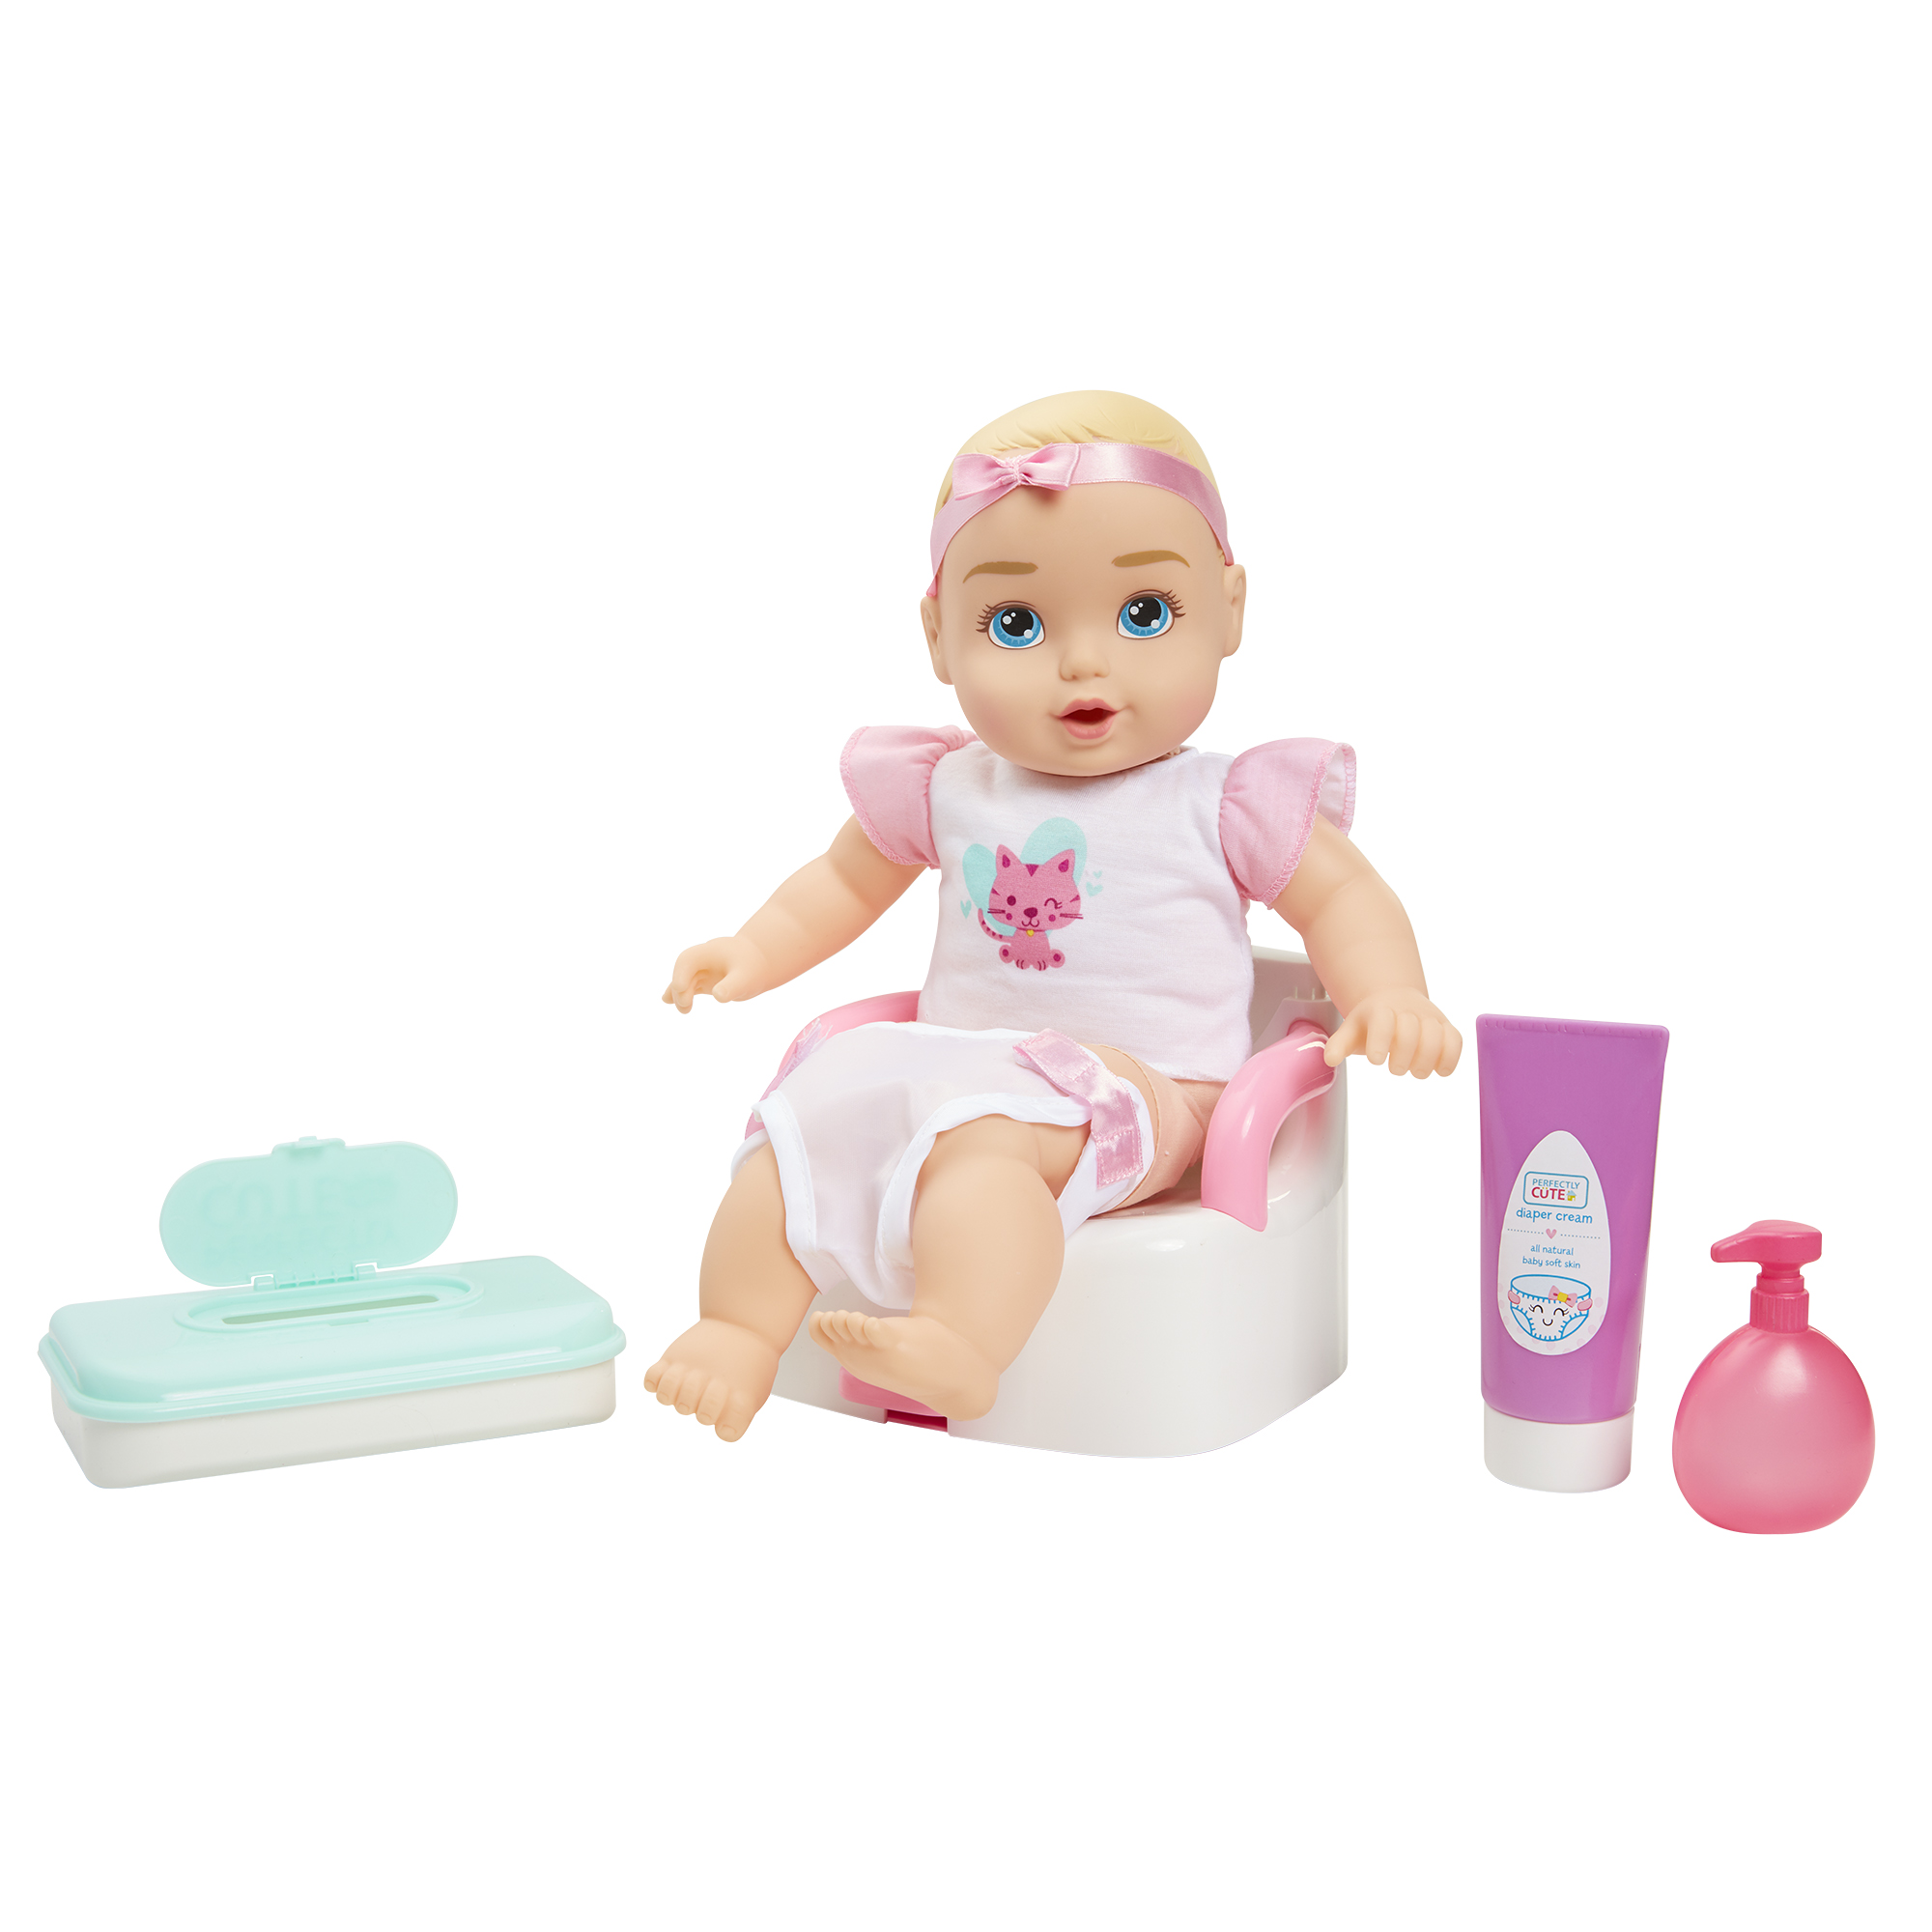 Perfectly Cute Baby My Sweet Baby Potty Training Playset